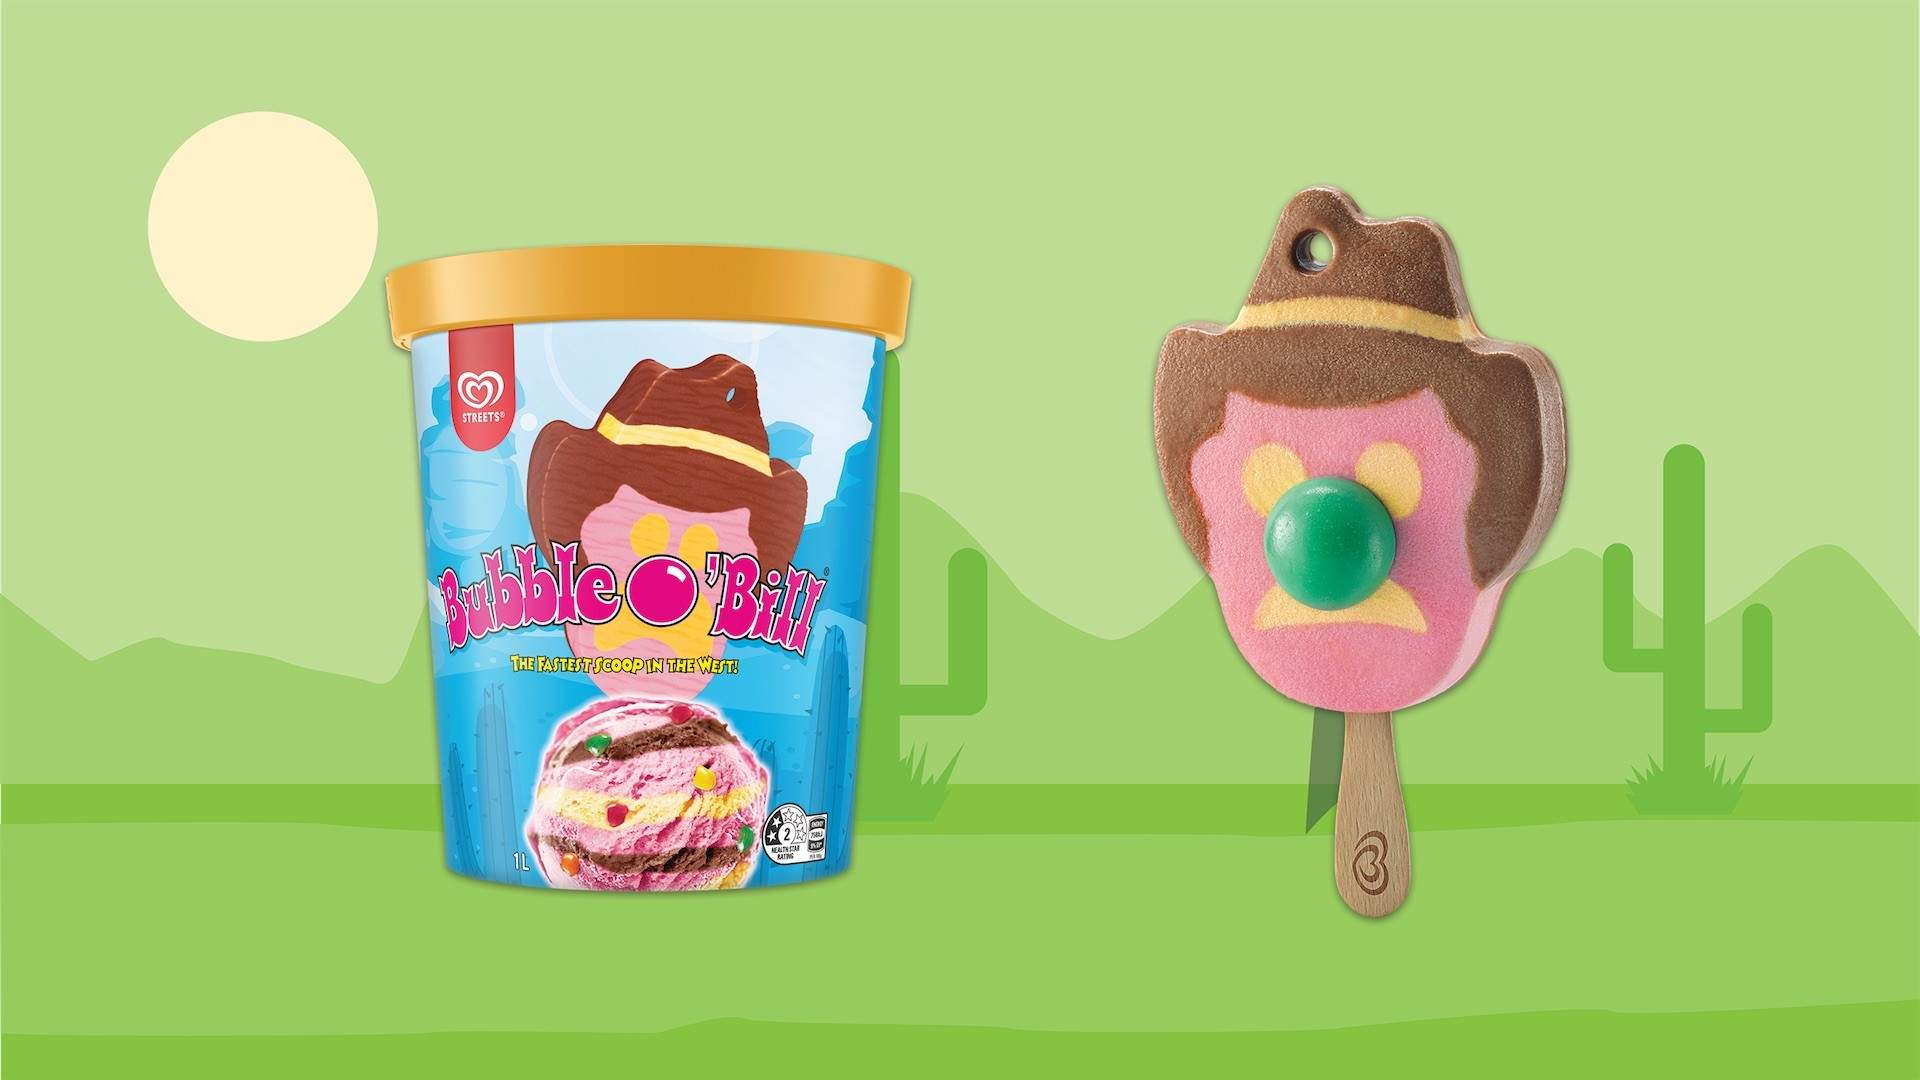 Tubs of Rainbow Paddle Pop and Bubble O'Bill Ice Cream Have Just Landed in the Freezer Aisle